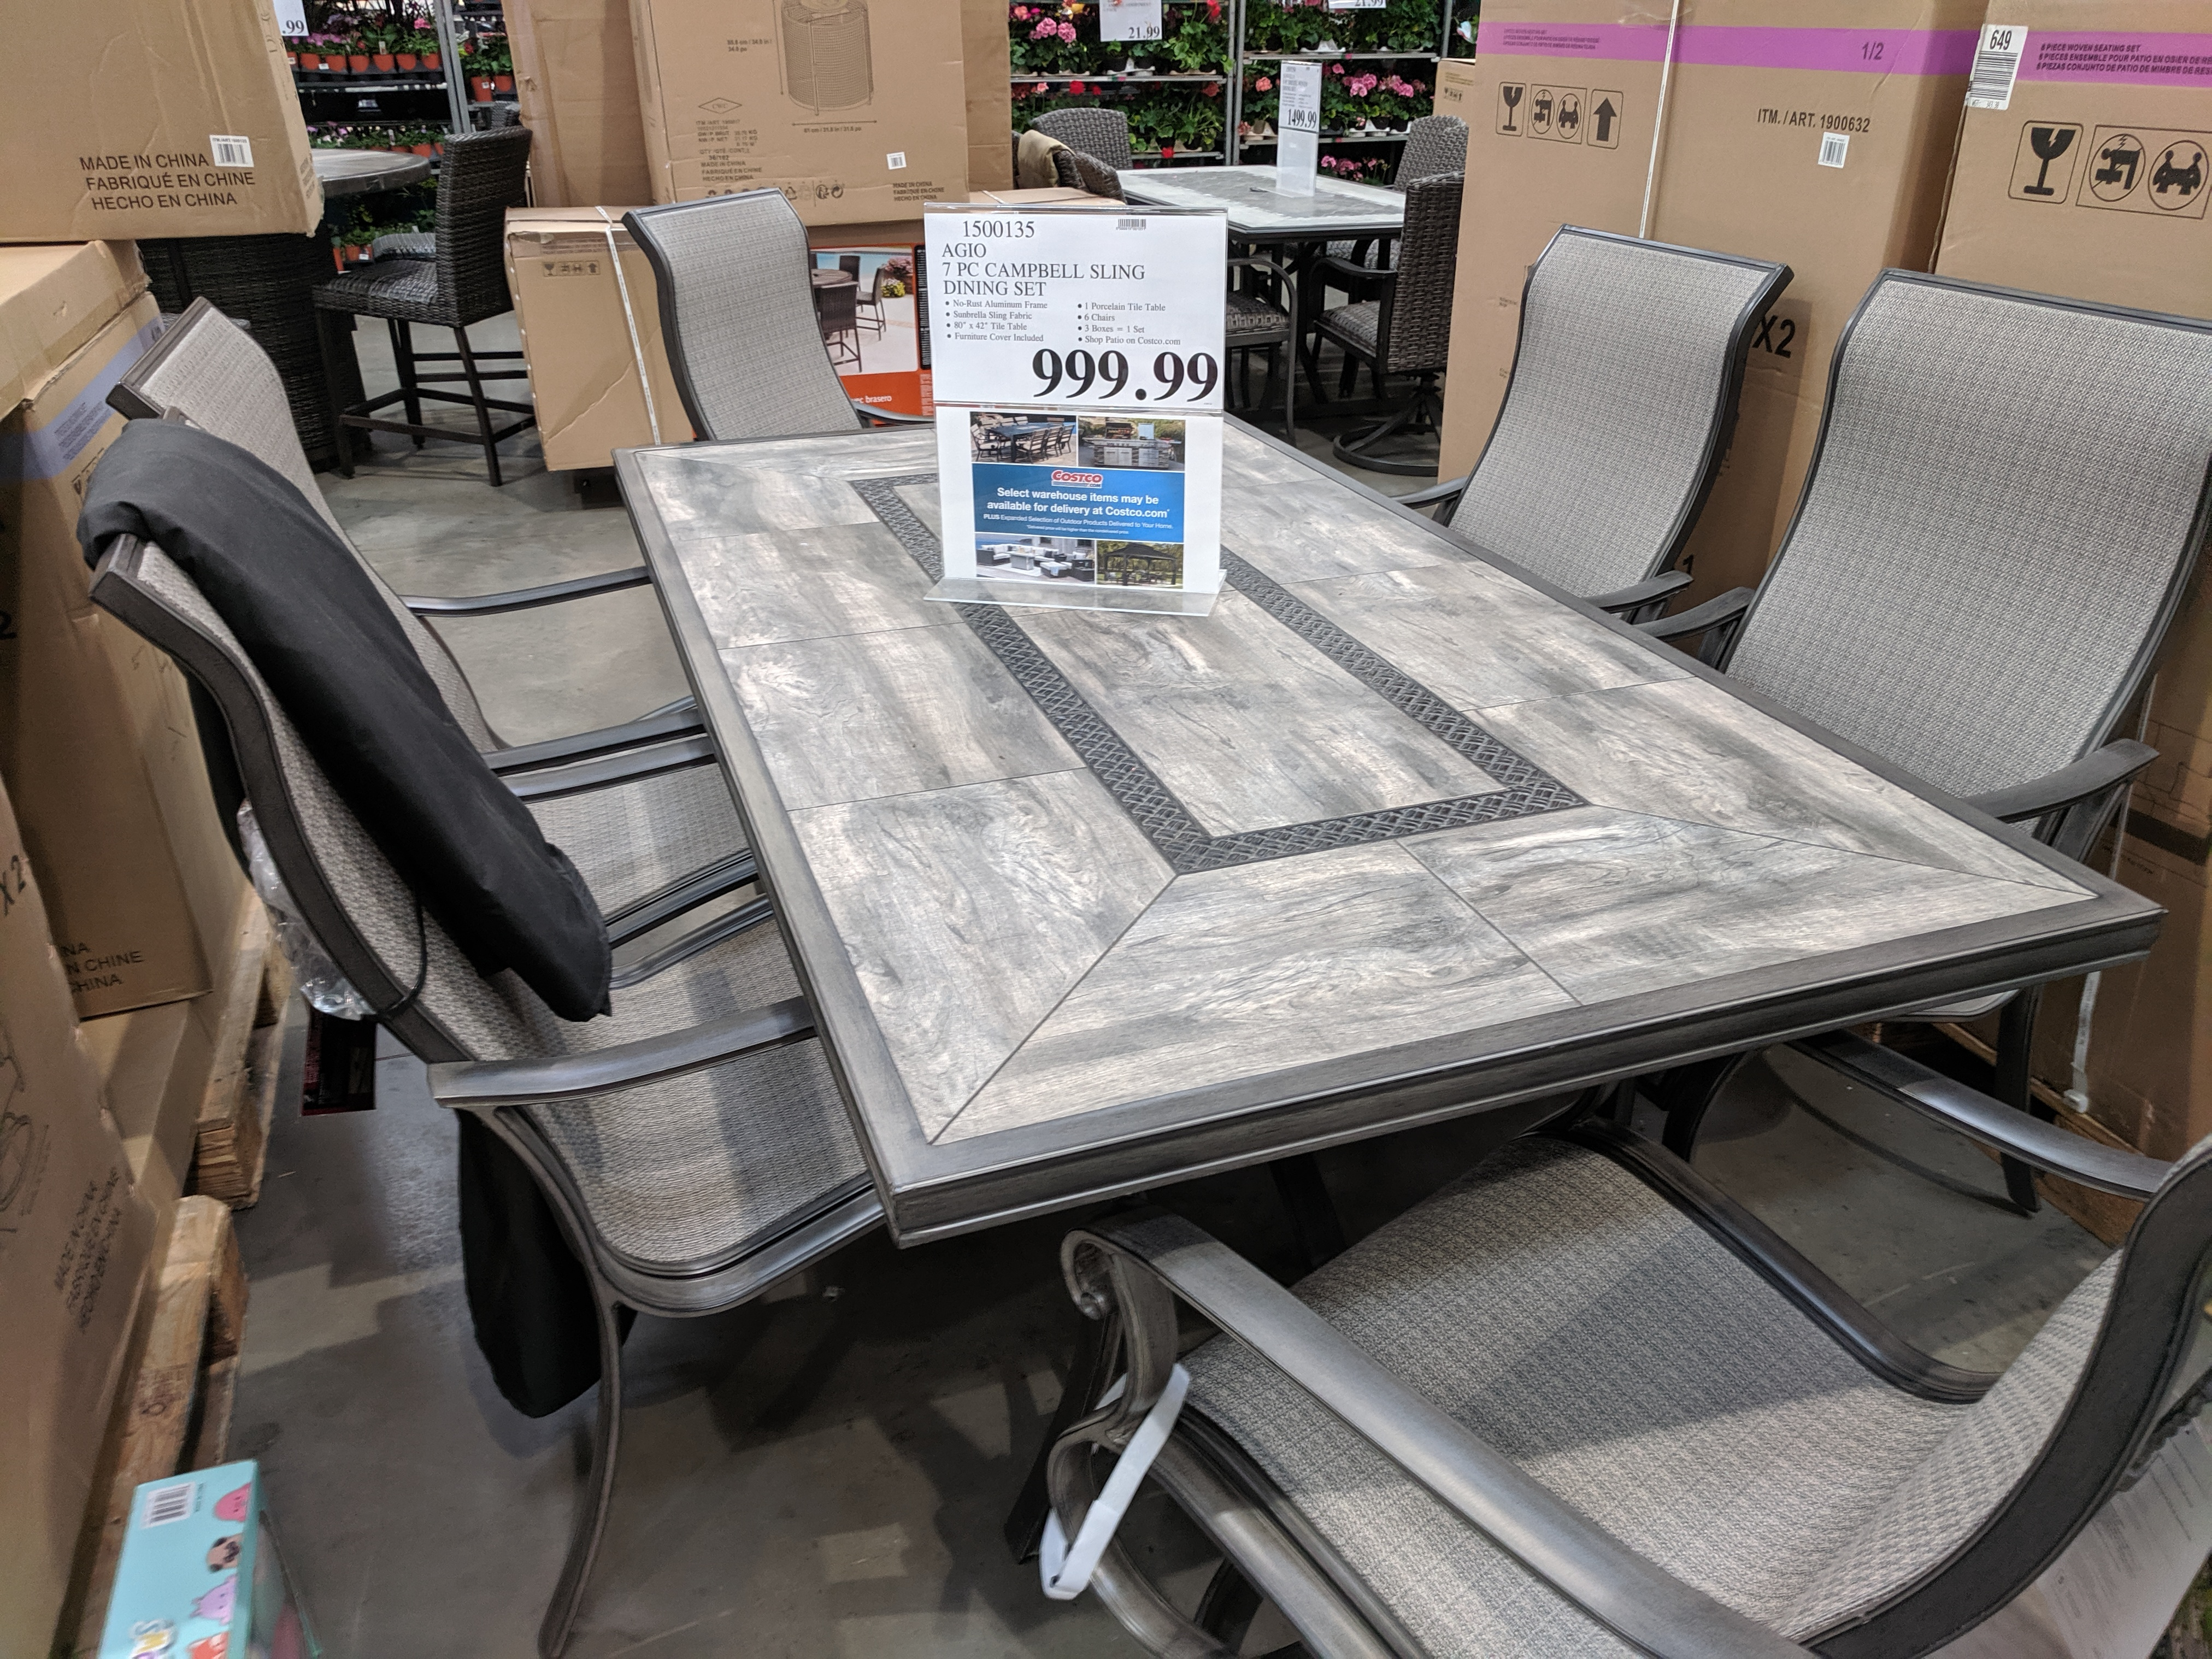 Outdoor Patio Furniture At Costco Roundup My Wholesale Life - Outdoor Furniture Clearance Sales